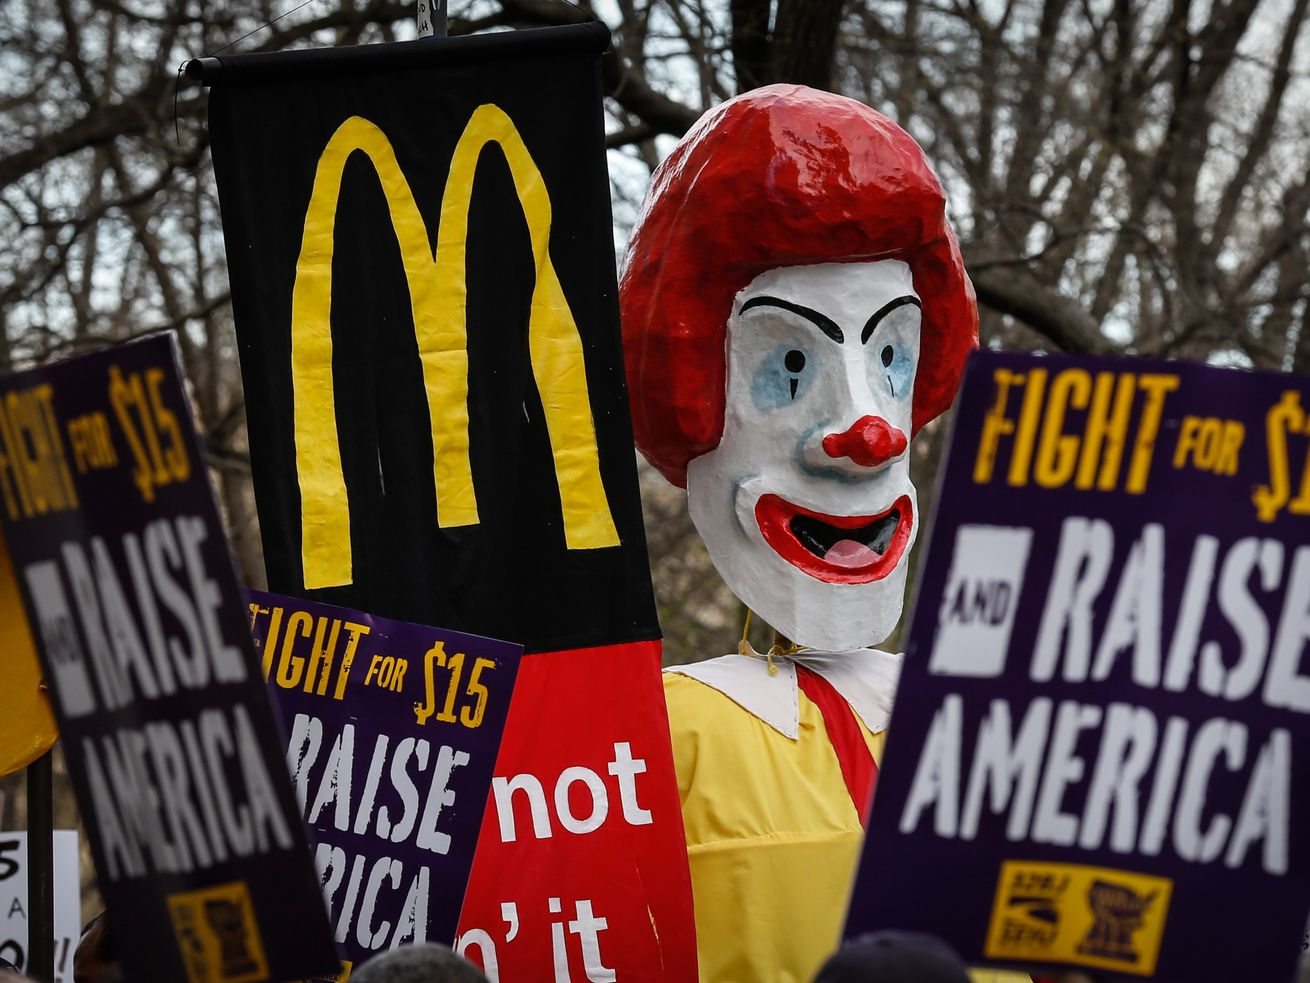 Fast-food workers rally for a $15 hourly minimum wage on April 15, 2015, in New York City.